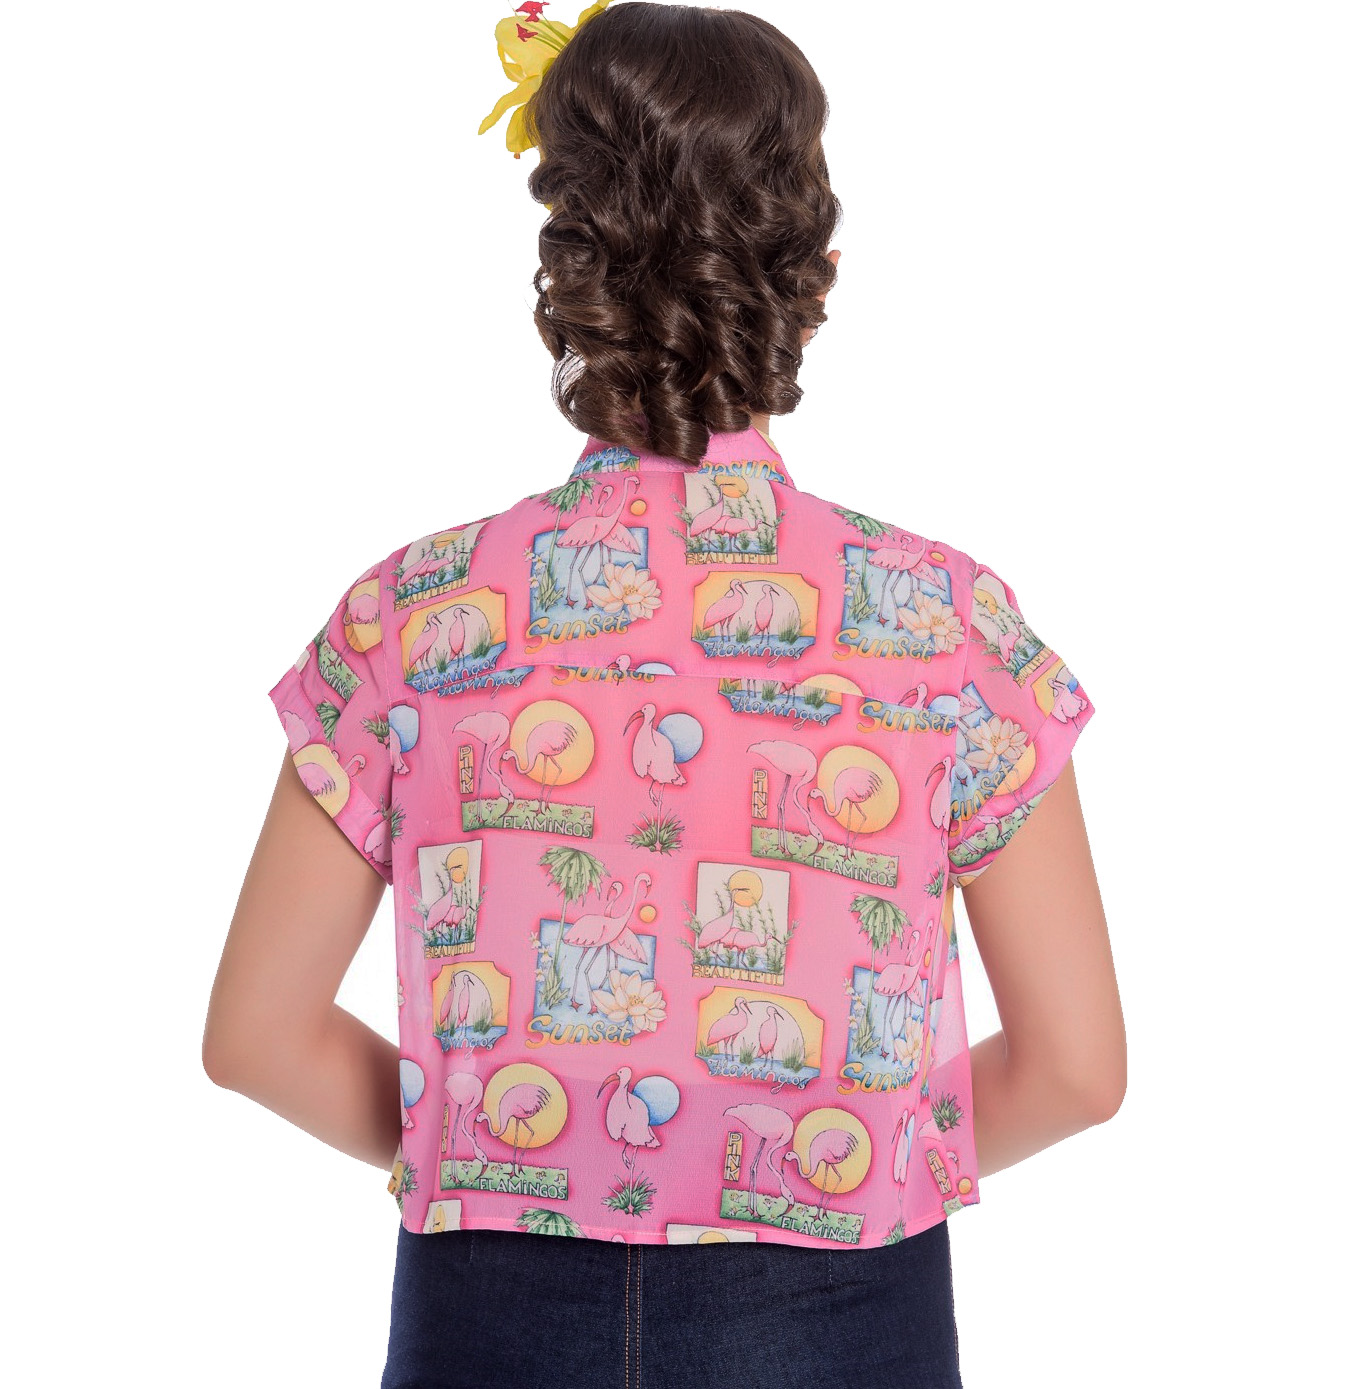 Hell-Bunny-50s-Retro-Top-Pink-Flamingo-MAXINE-Cropped-Blouse-Shirt-All-Sizes thumbnail 13